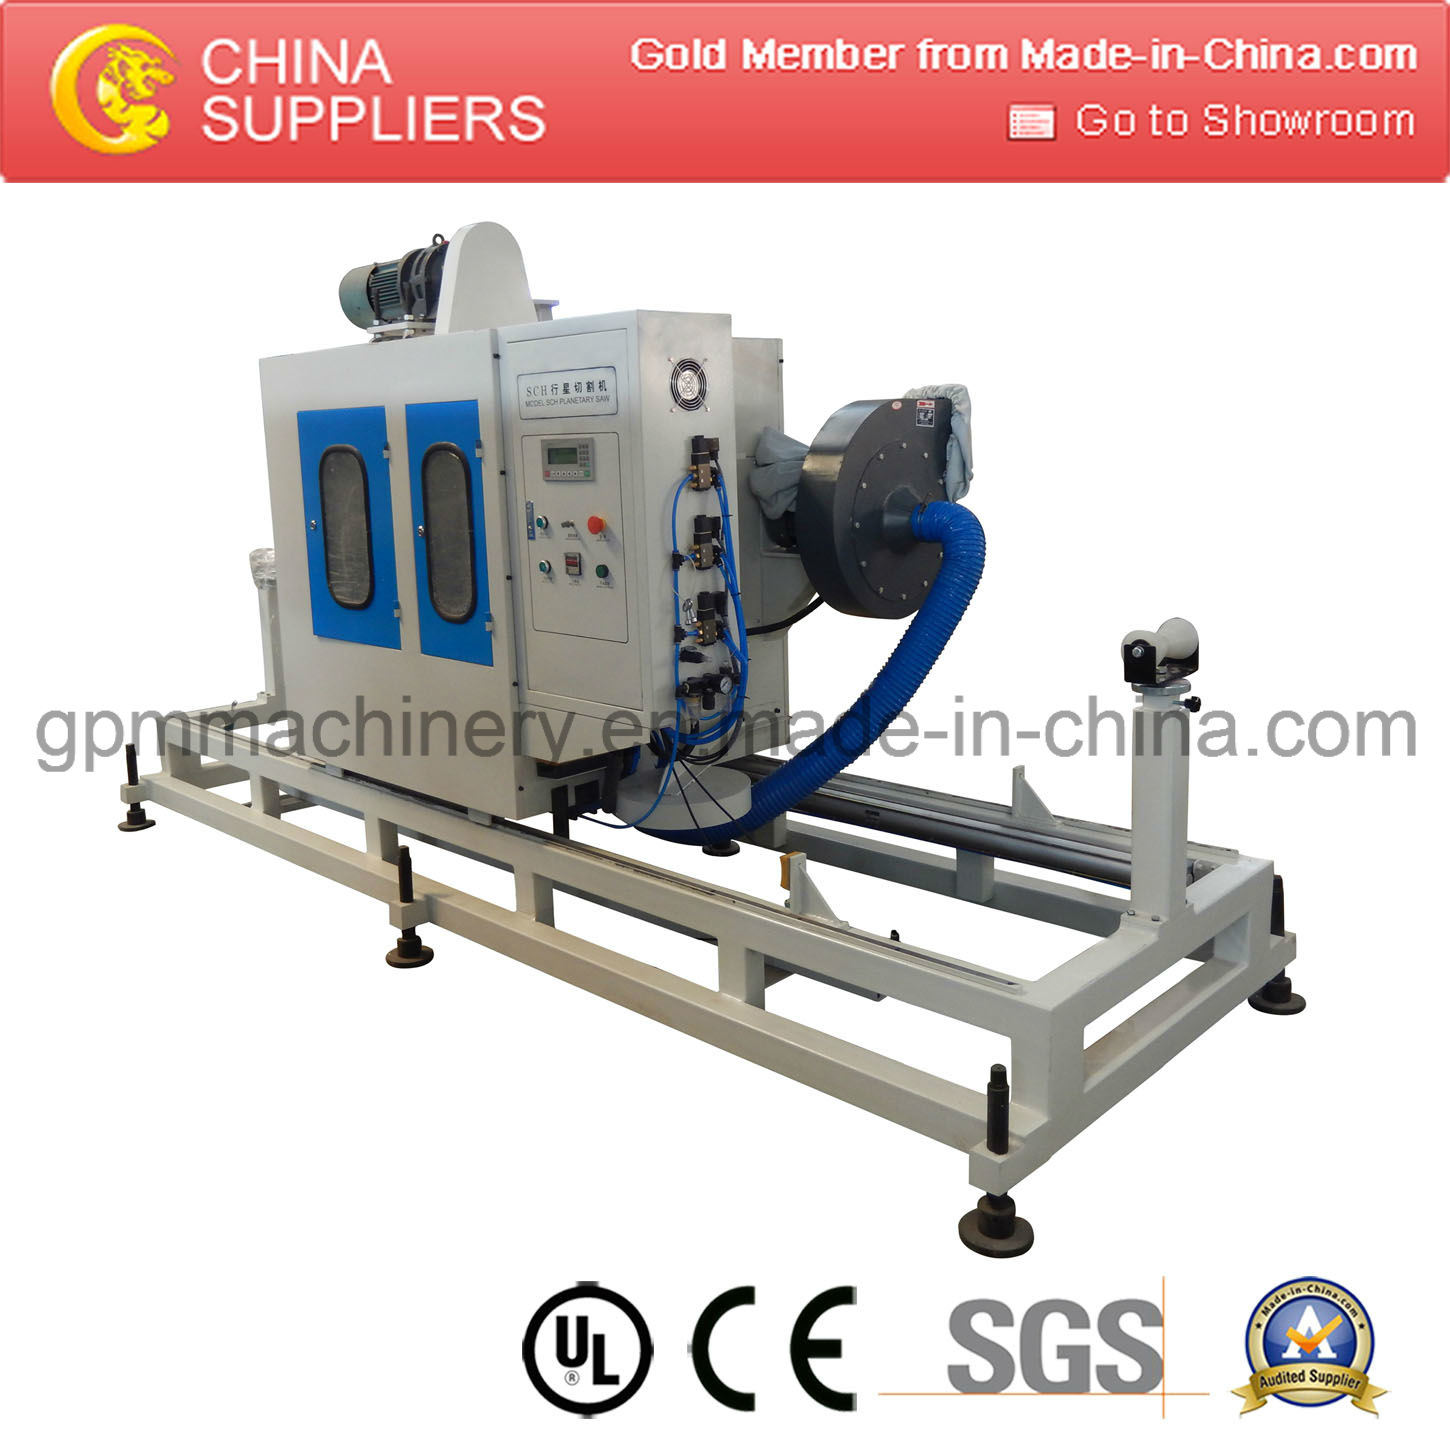 High Quality PVC Pipe Extrusion Line/PVC Pipe Production Line/PVC Pipe Making Machine